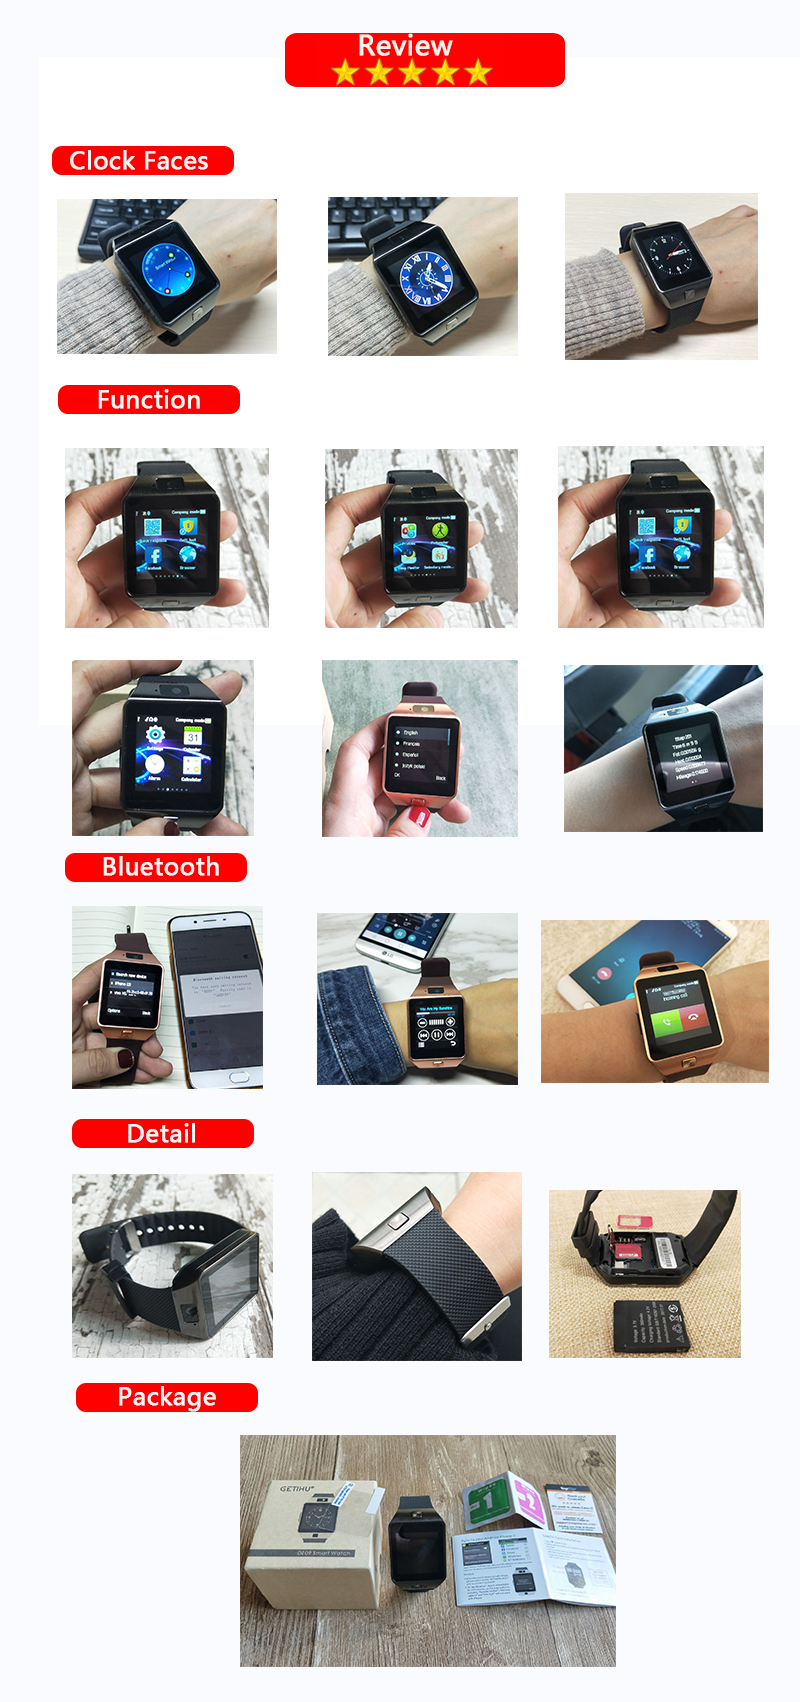 HTB1tBqhXizxK1RkSnaVq6xn9VXaz - Stylish Smartwatch with Bluetooth SIM TF Card Slot and Camera